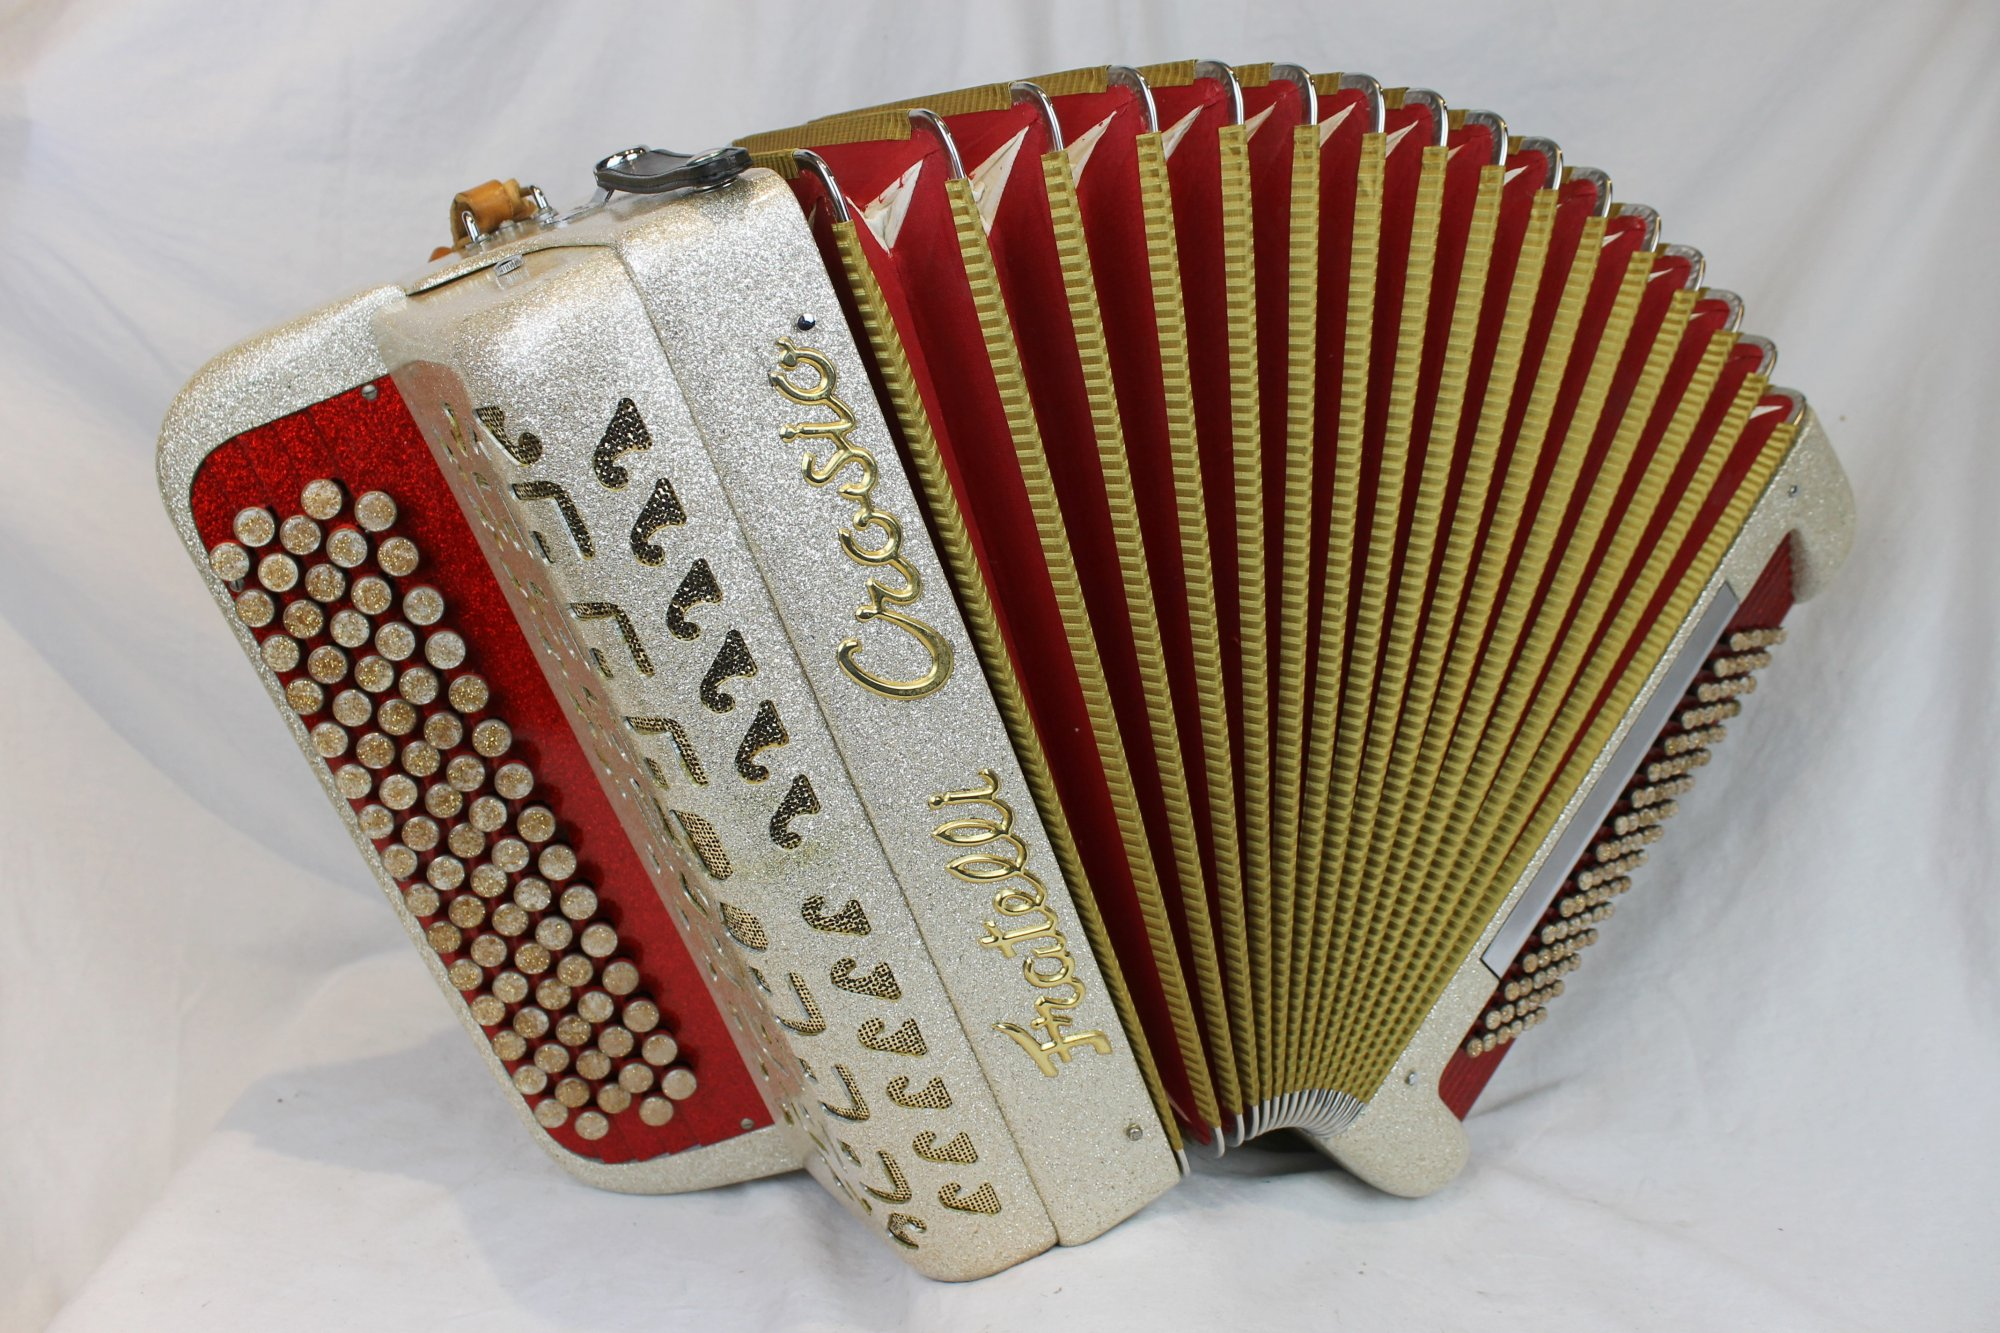 3882 - Gold Sparkle Fratelli Crosio Chromatic Button Accordion C System MMM 77 96